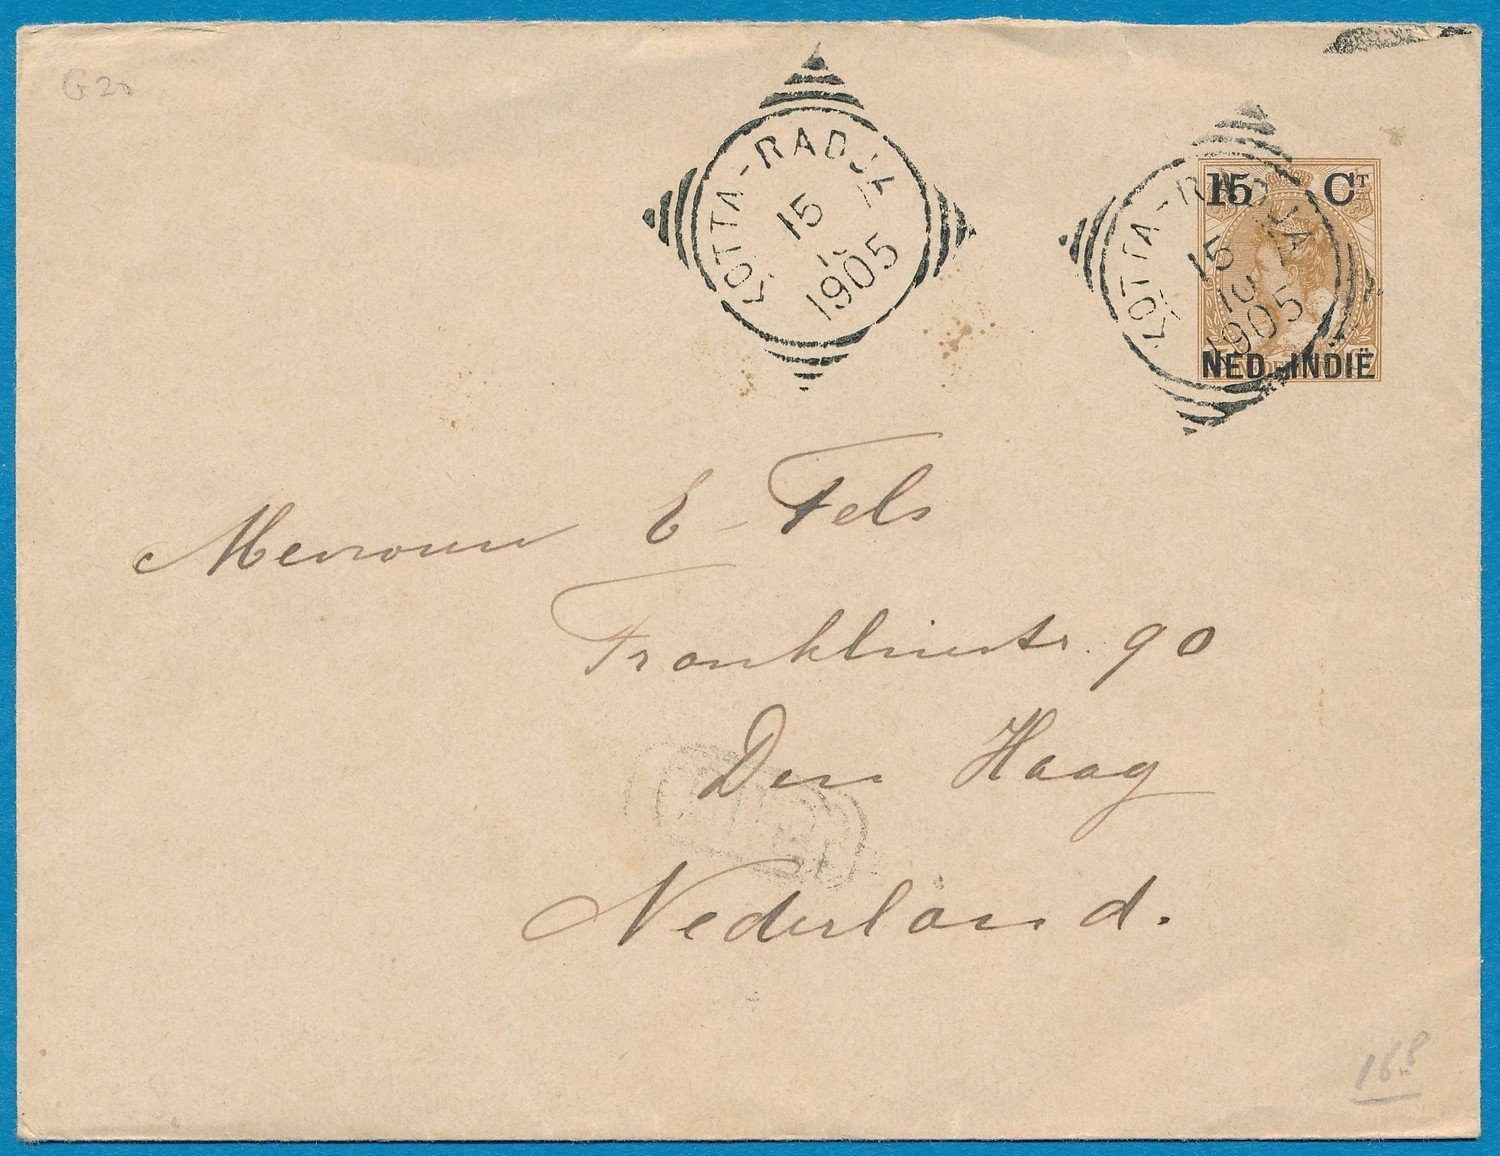 NETHERLANDS EAST INDIES envelope 1905 Kata Radja